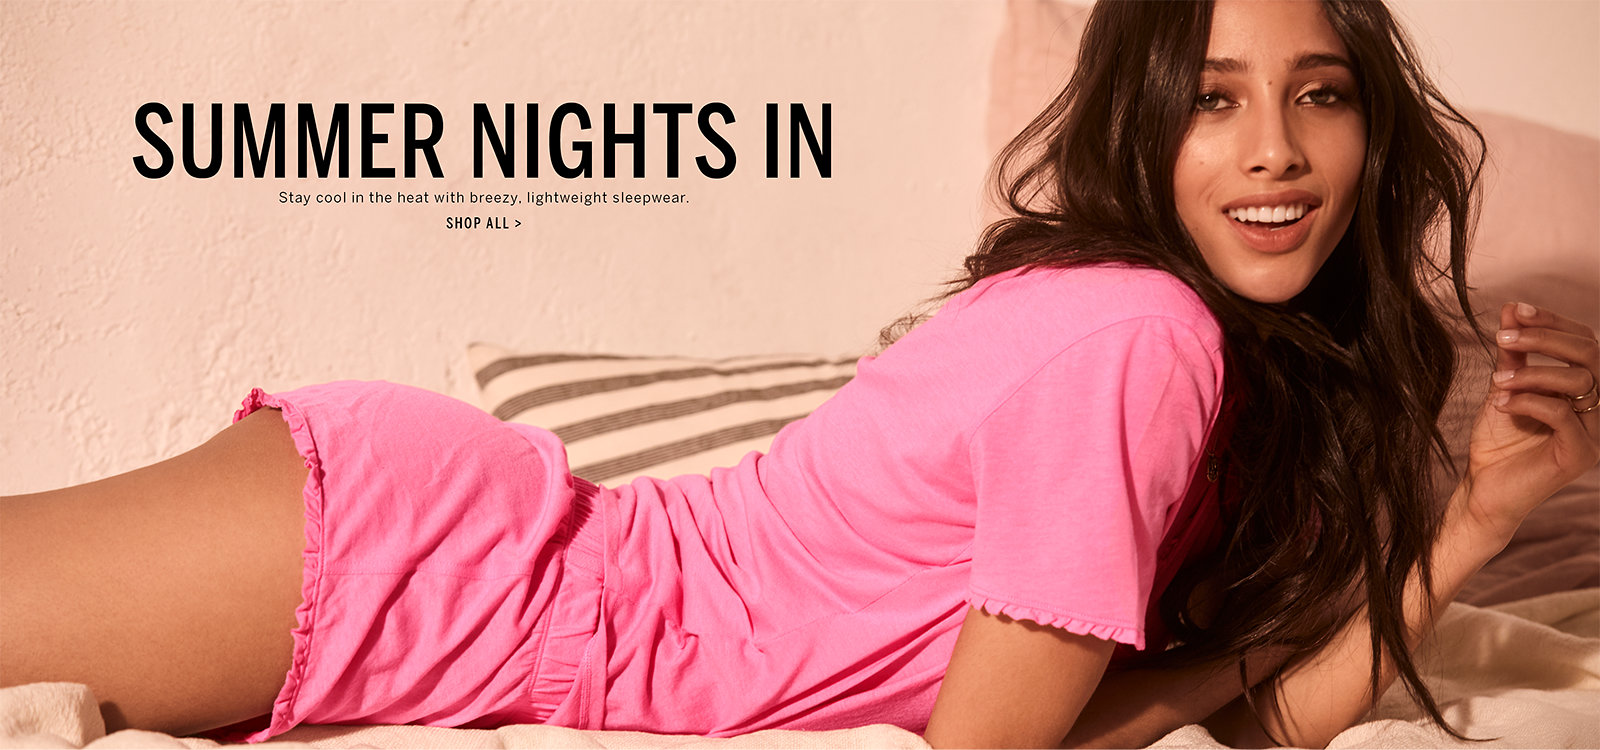 44ea8f3dd9 Summer Nights In. Stay cool in the heat with breezy, lightweight sleepwear.  Click. Shop by PJ Separates.